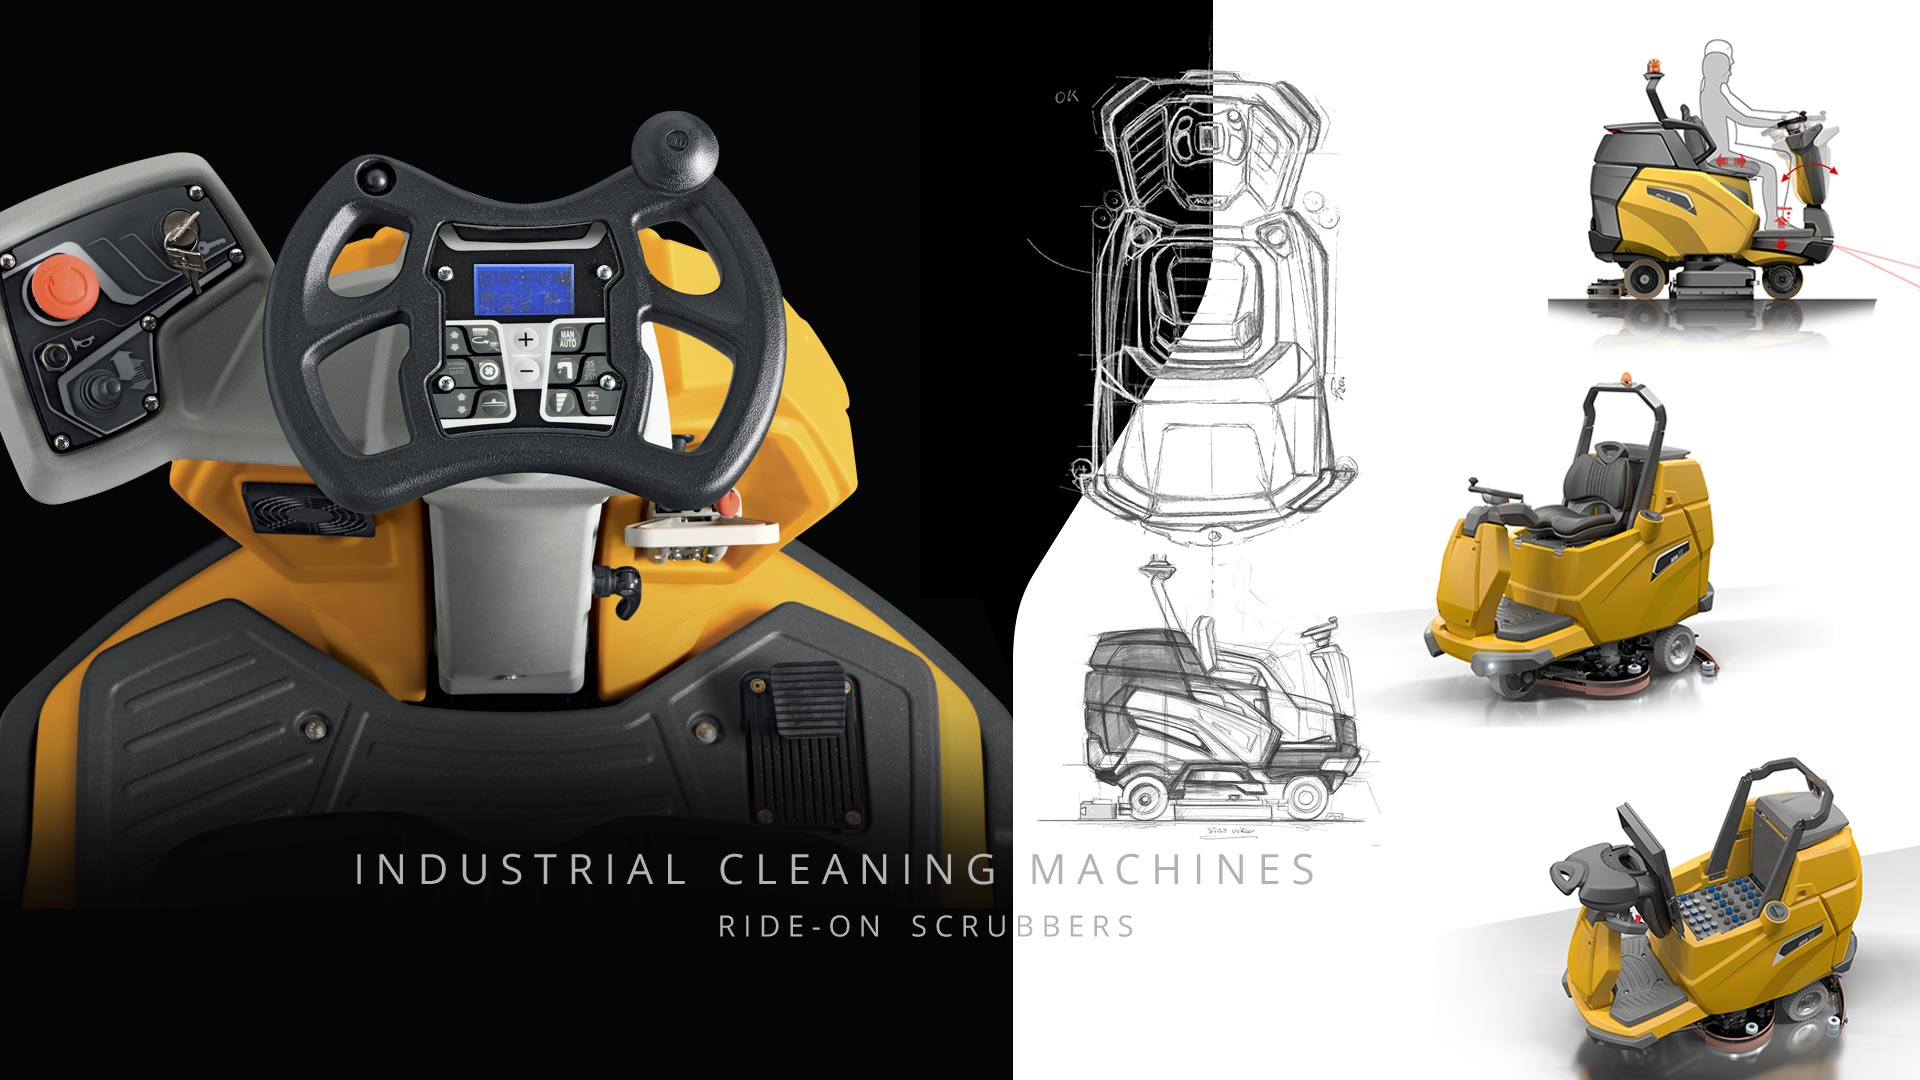 AMV Design Industrial cleaning machines: Ride-on Scrubbers